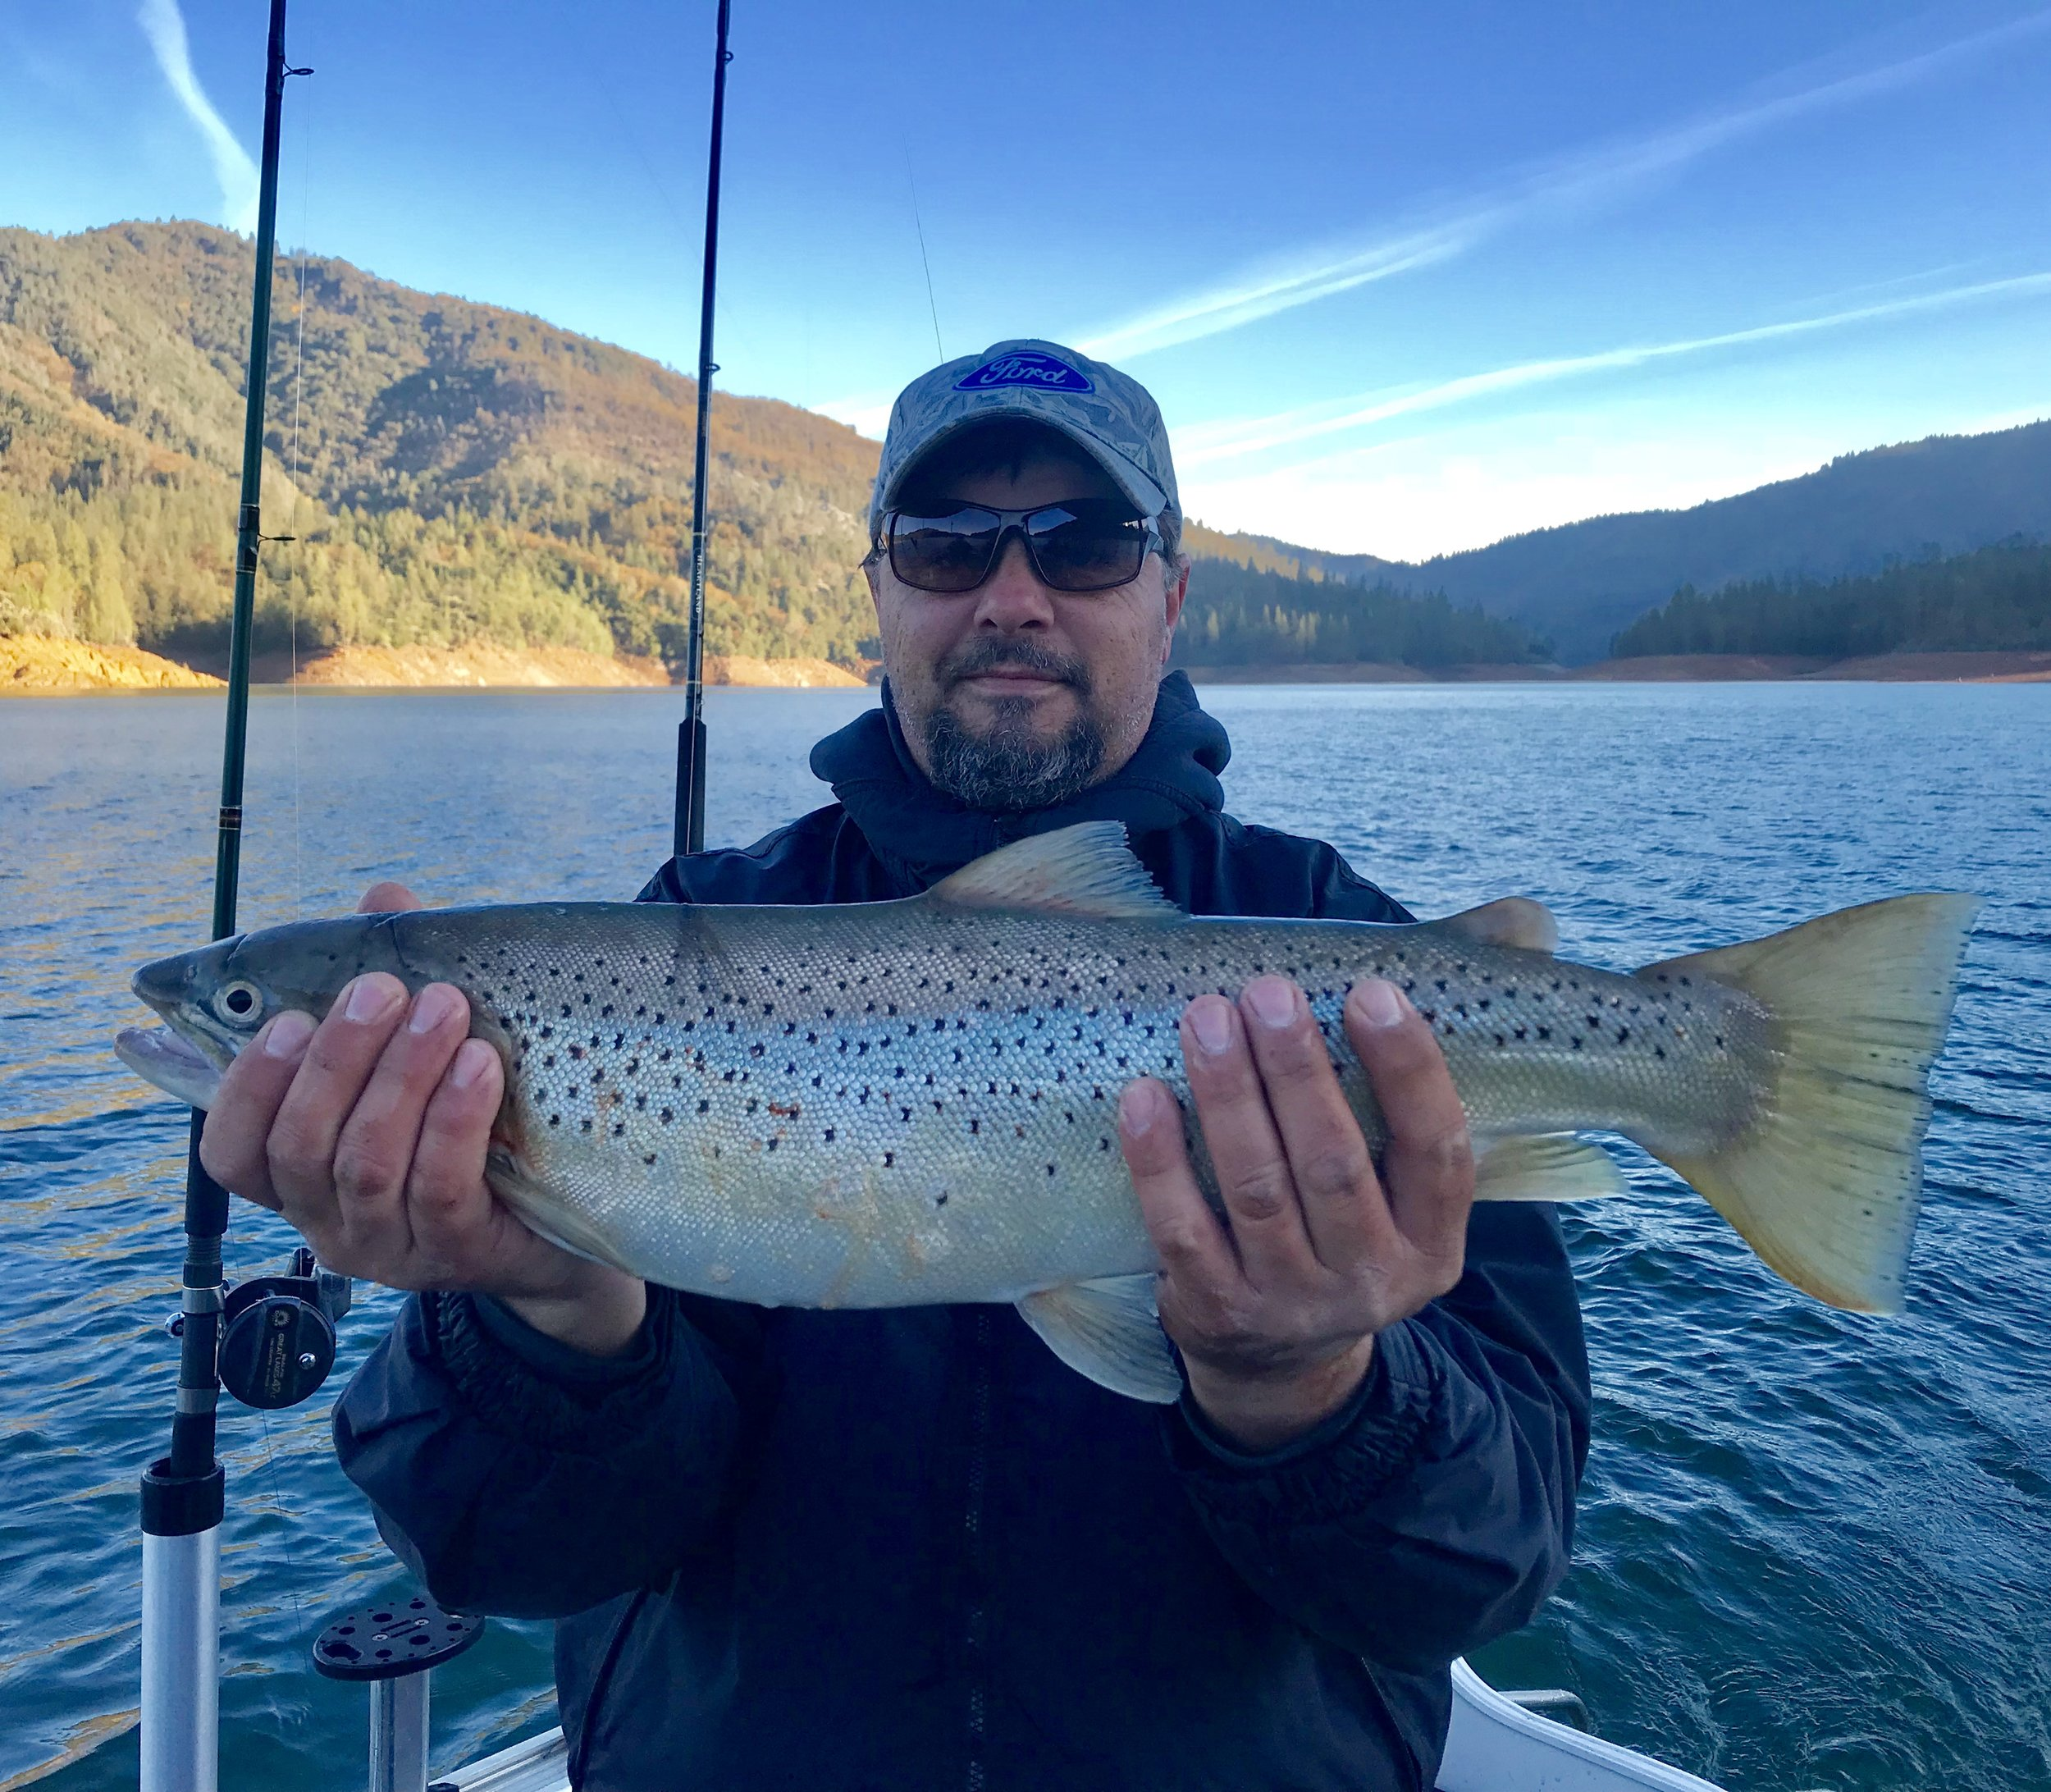 Mike Fisher with a trophy size Shasta Lake German Brown he caught with a Trinidad Tackle #3 1255 Optimizer spoon while fishing with Stan Kulak.